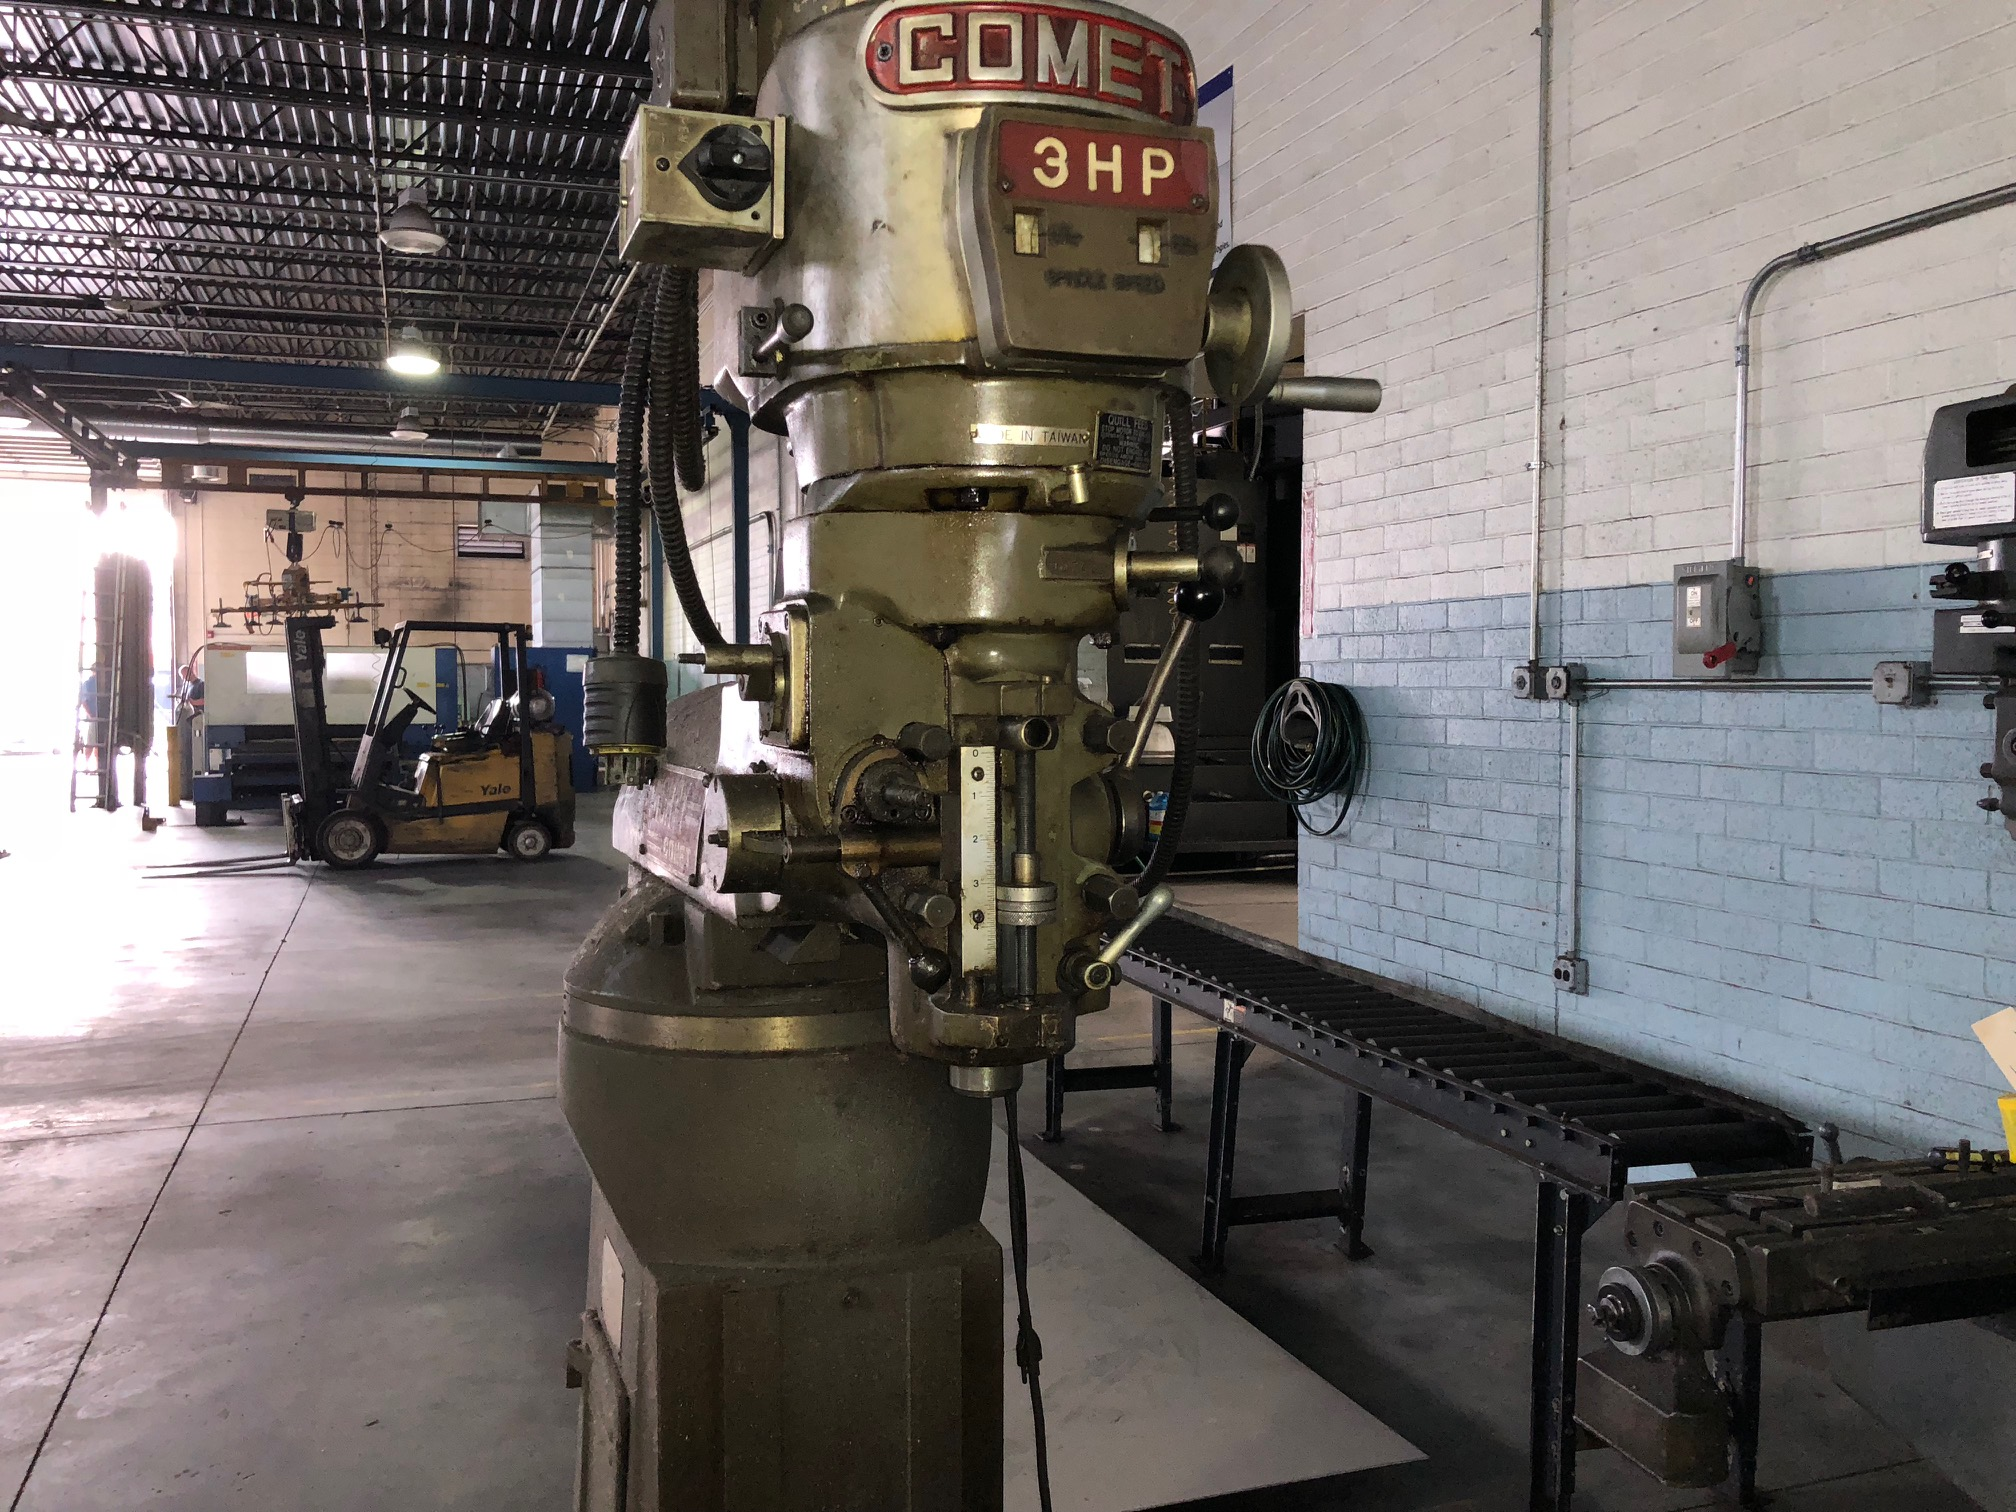 Used Vertical Boring Mill Comet